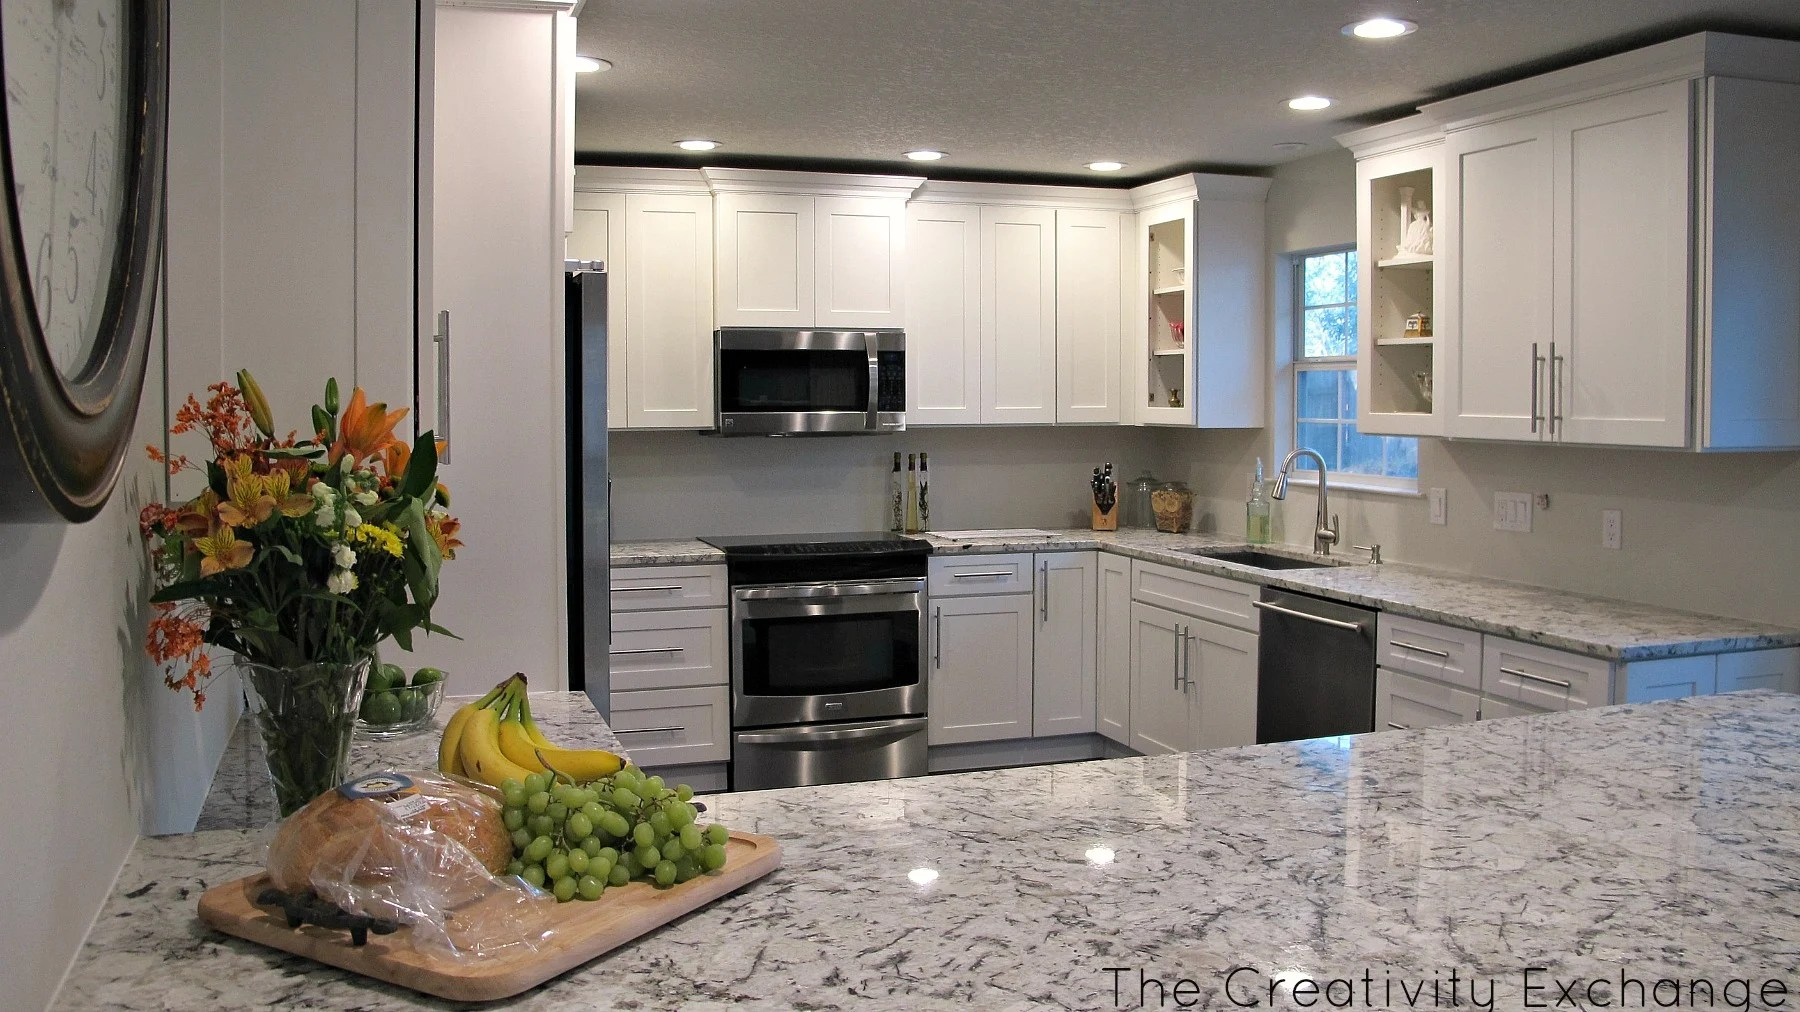 cousin franks amazing kitchen remodel before after kitchen remodel pictures Amazing before and after kitchen remodel The Creativity Exchange